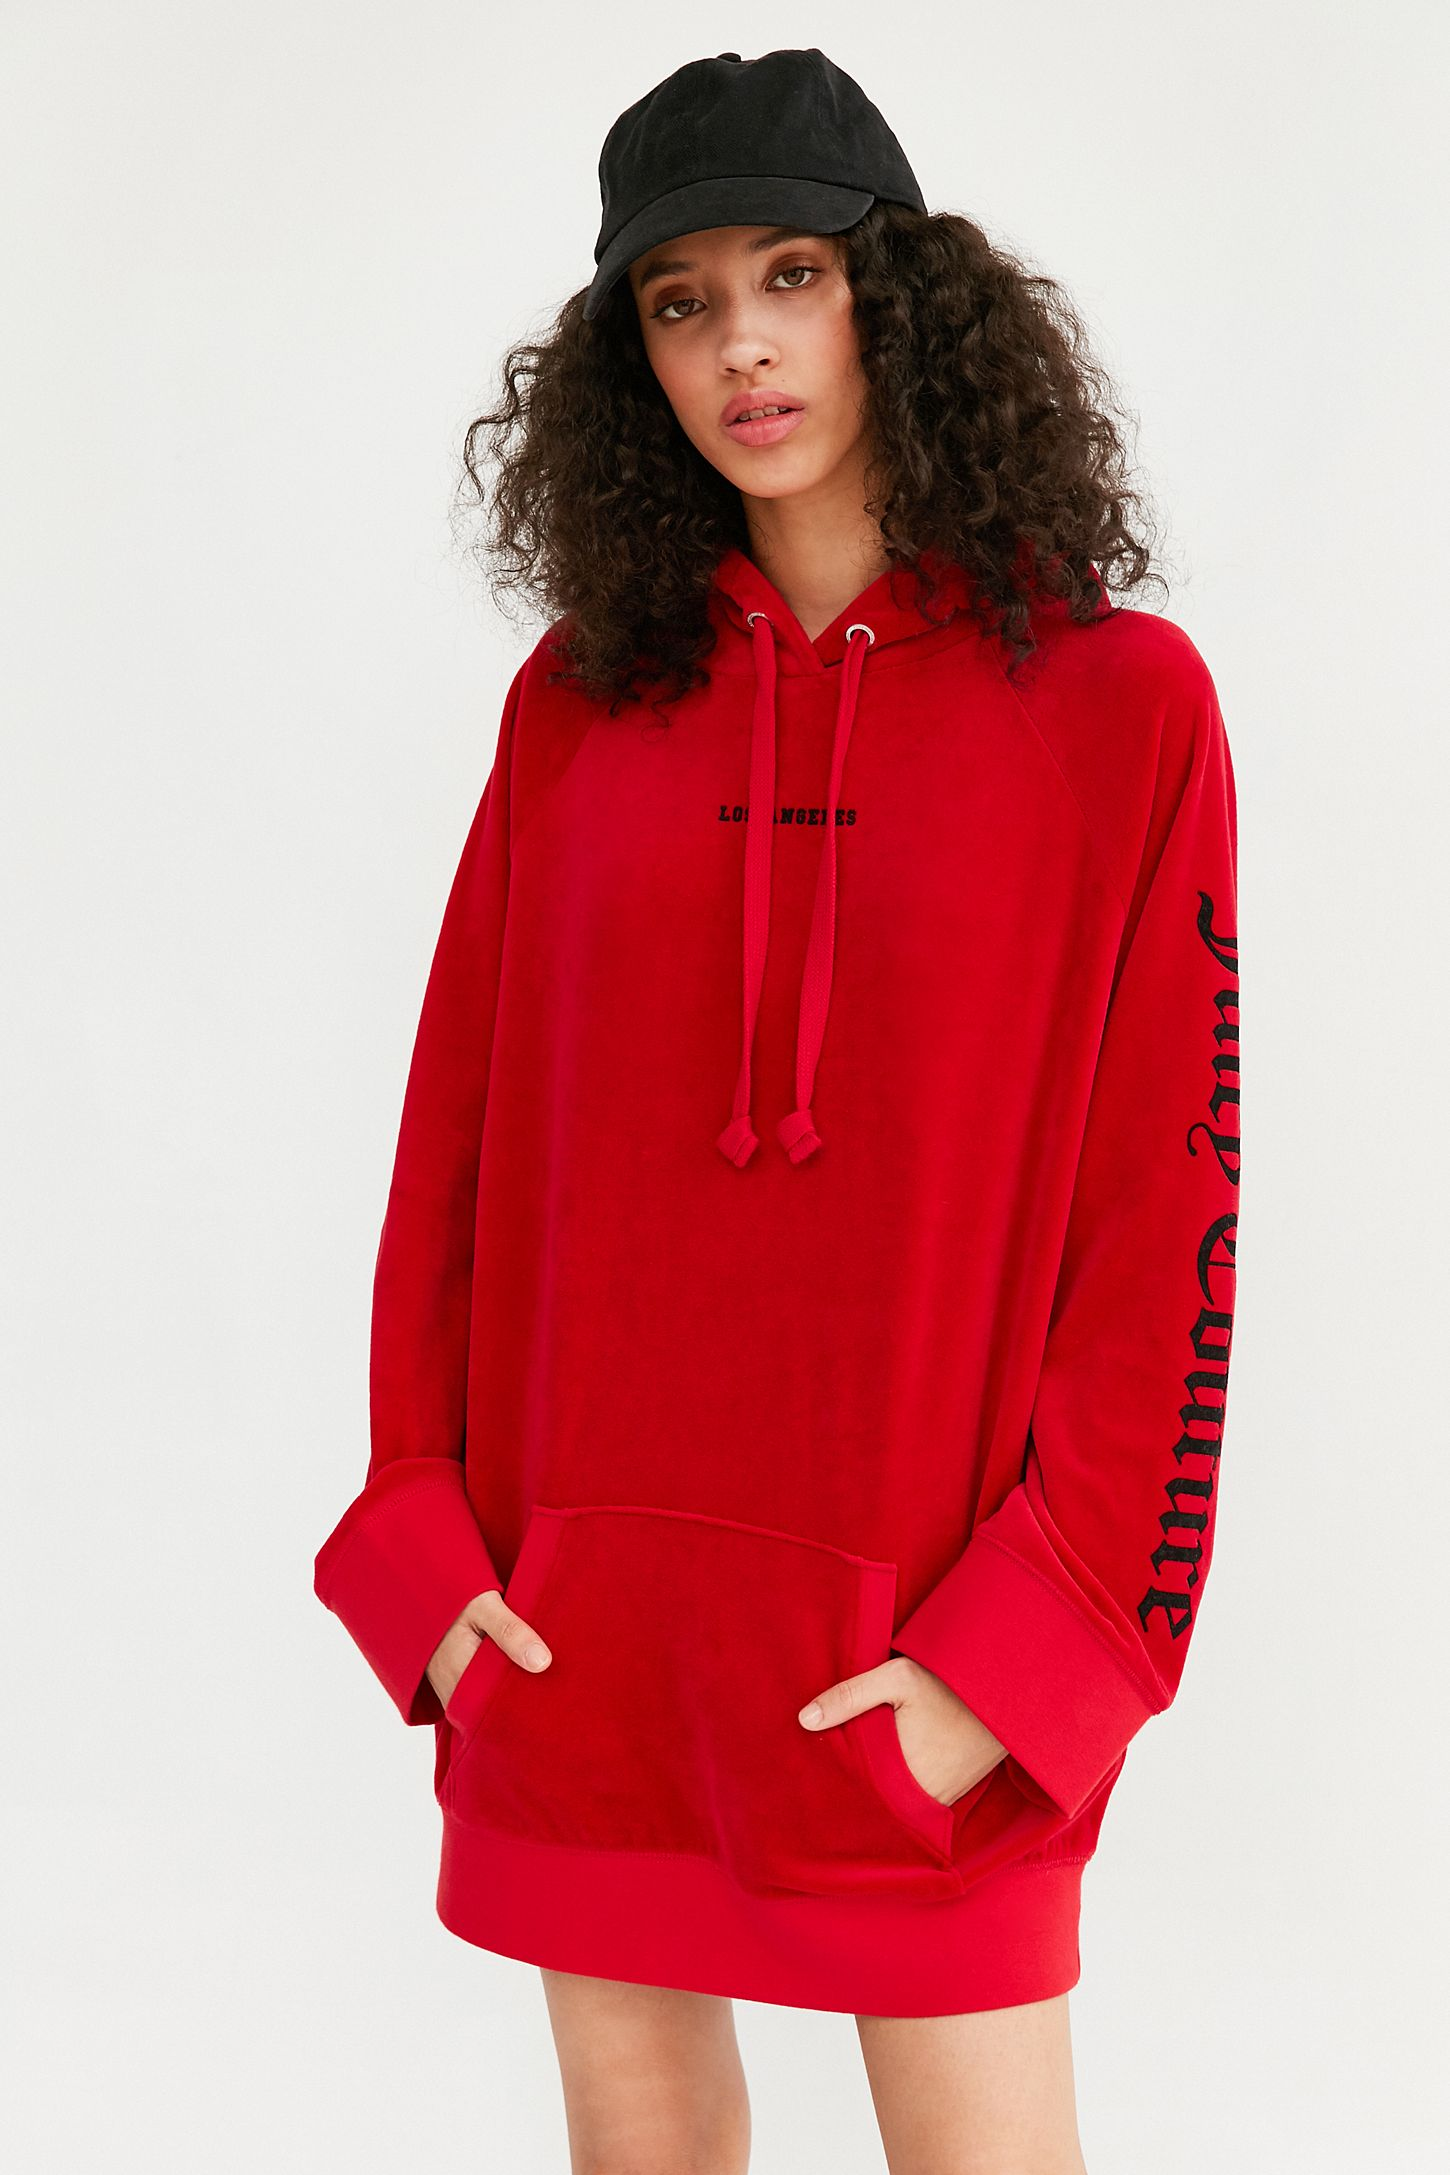 7e9979883a3 Juicy Couture For UO Oversized Velour Hoodie